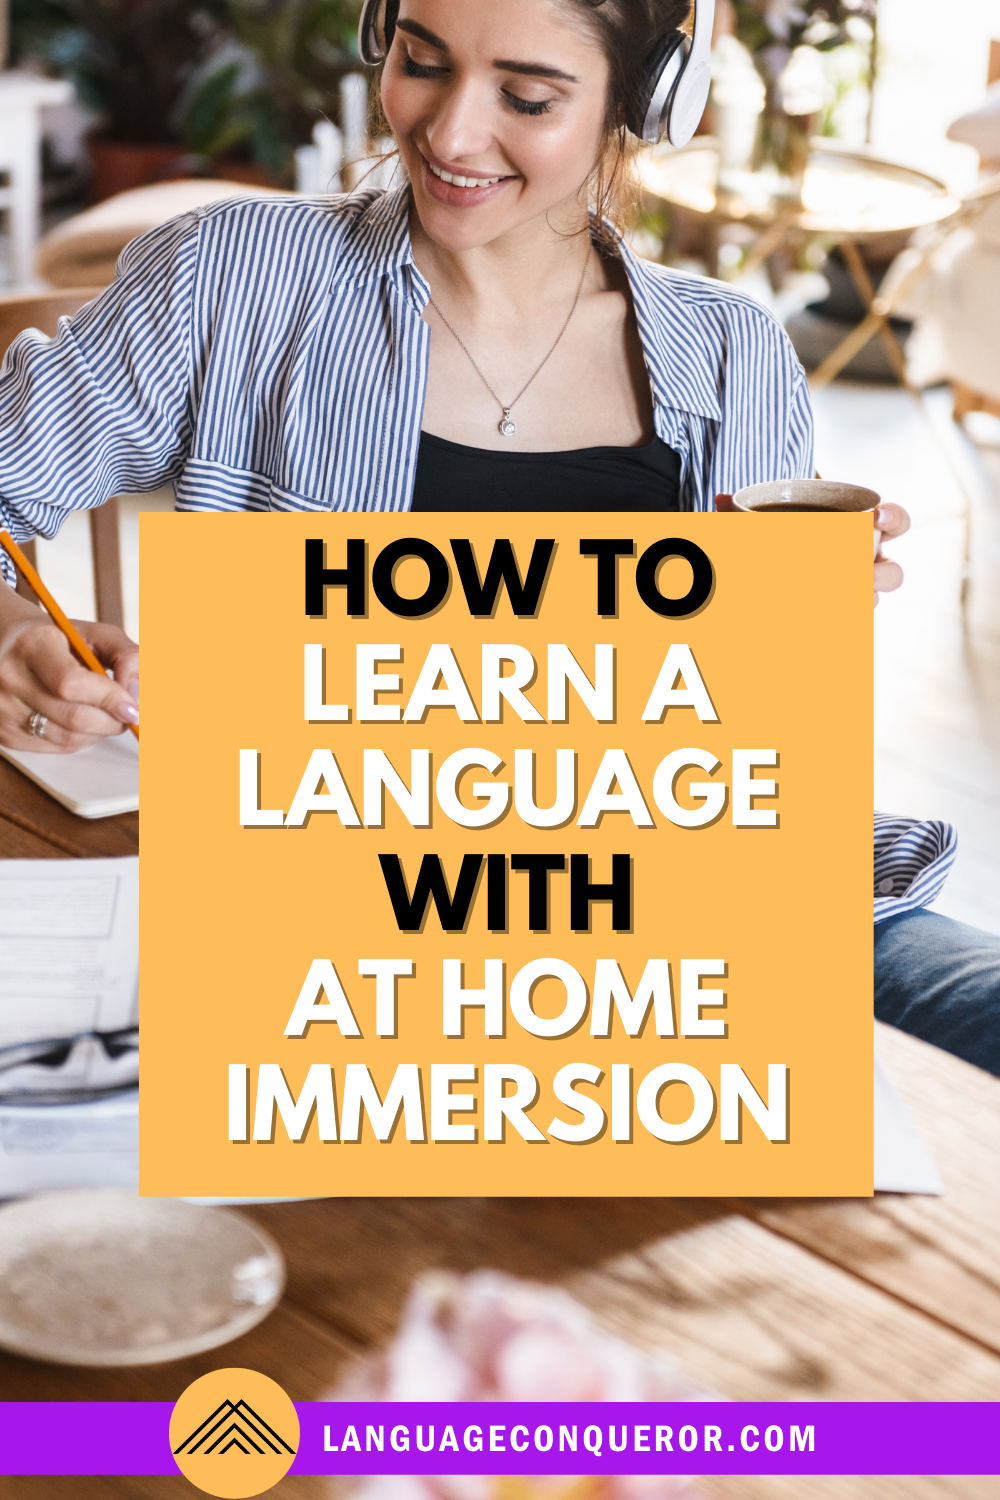 How to Learn a Language With At Home Immersion